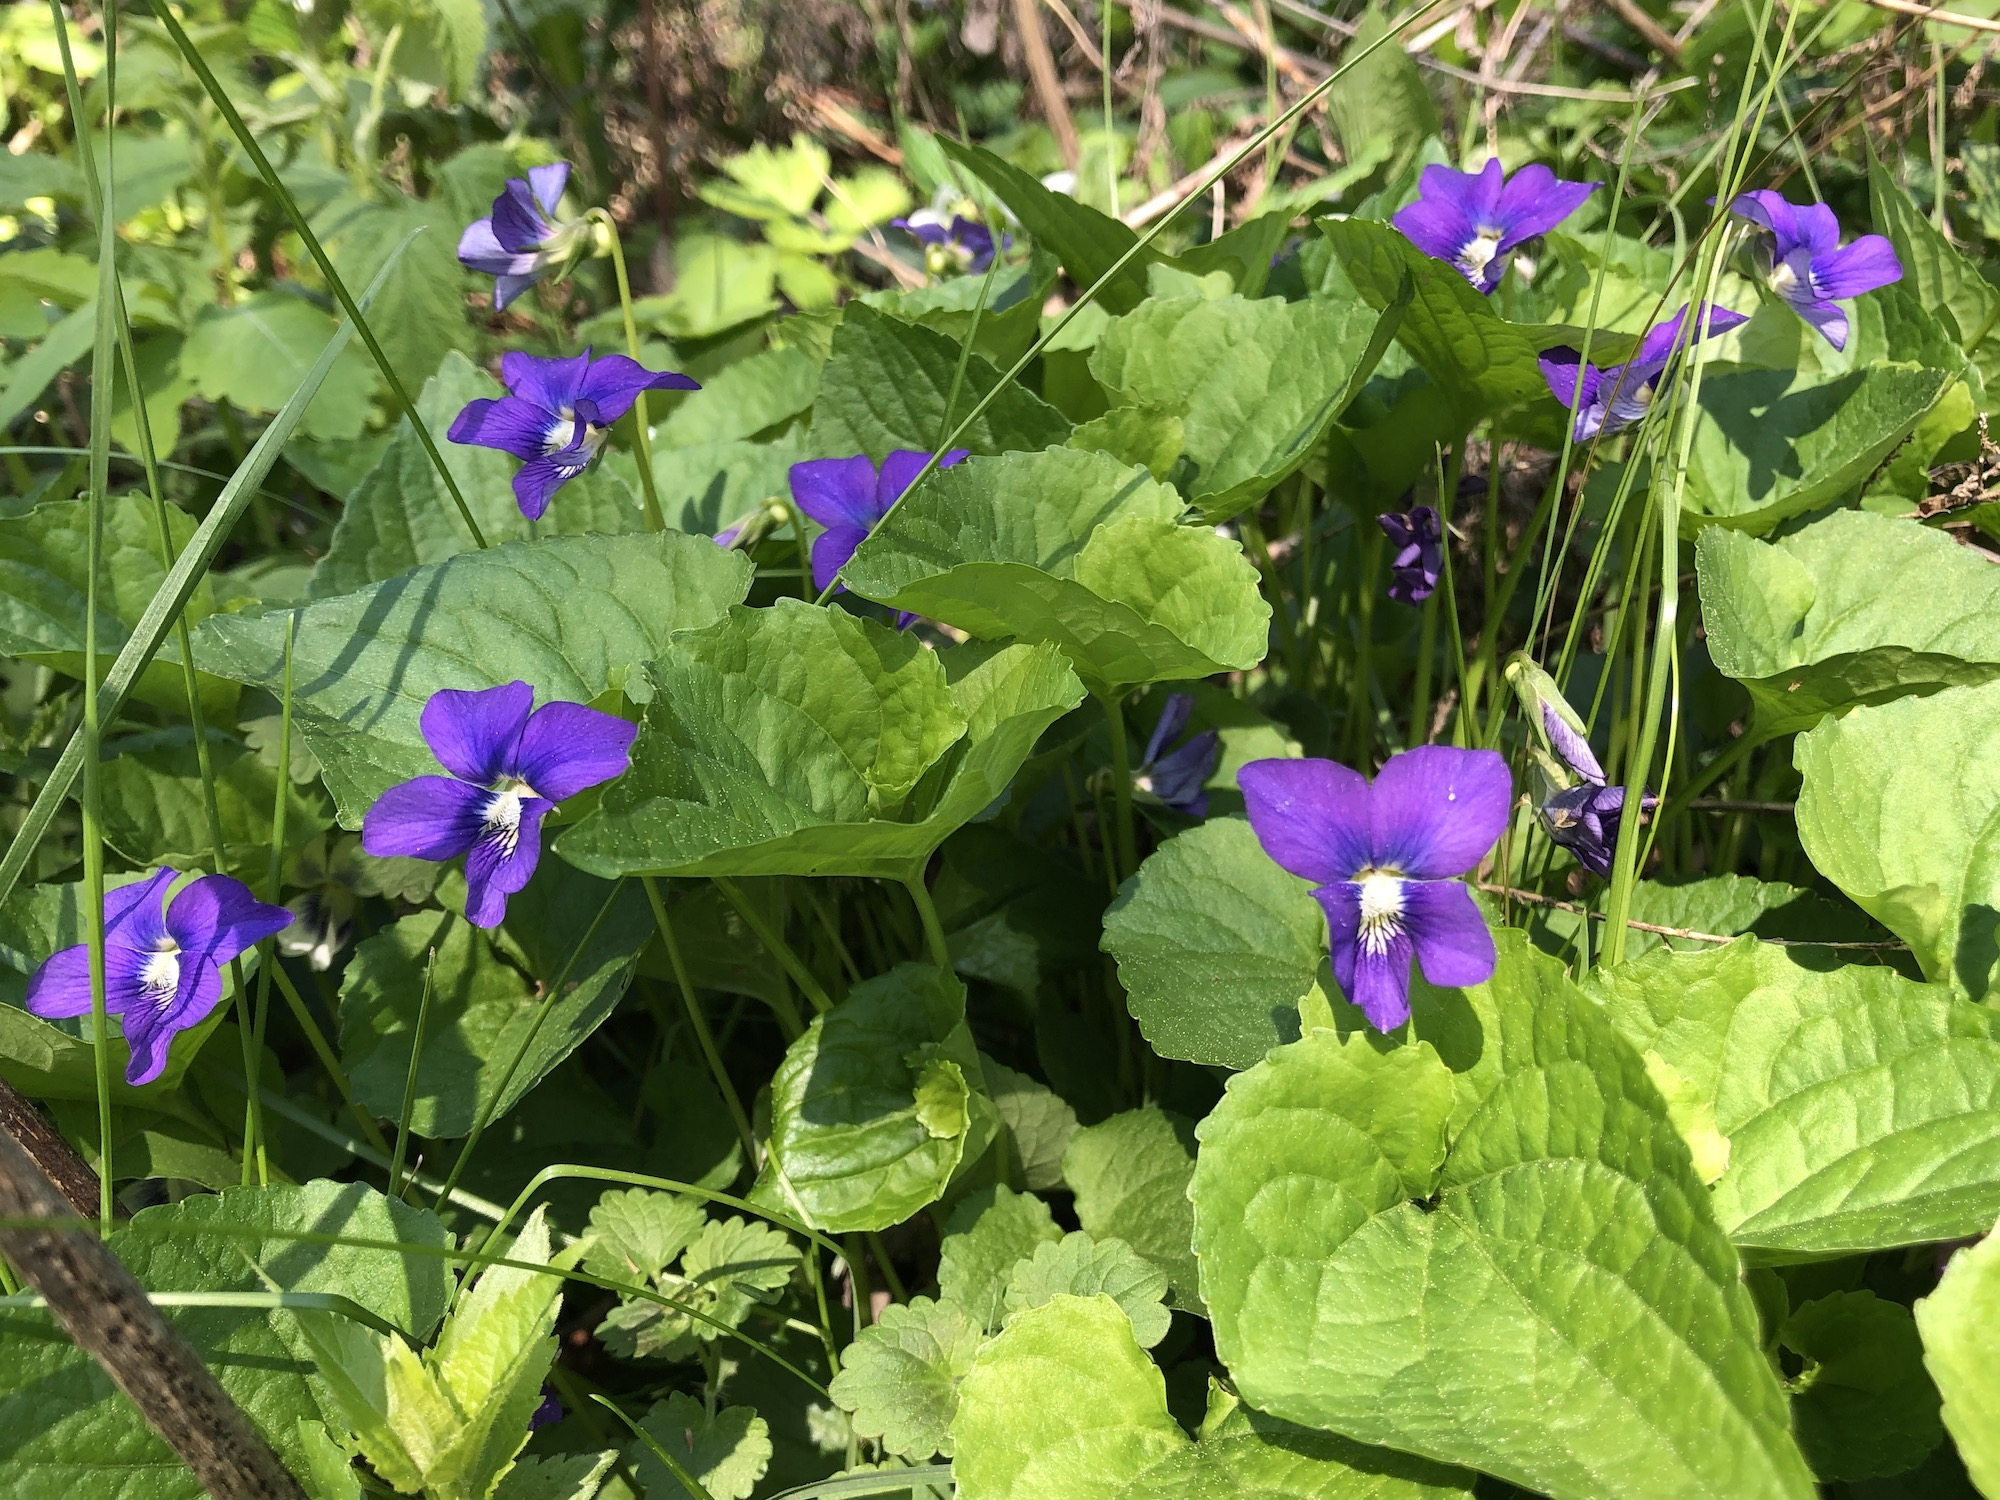 Wood Violets near the Duck Pond on May 14, 2019.